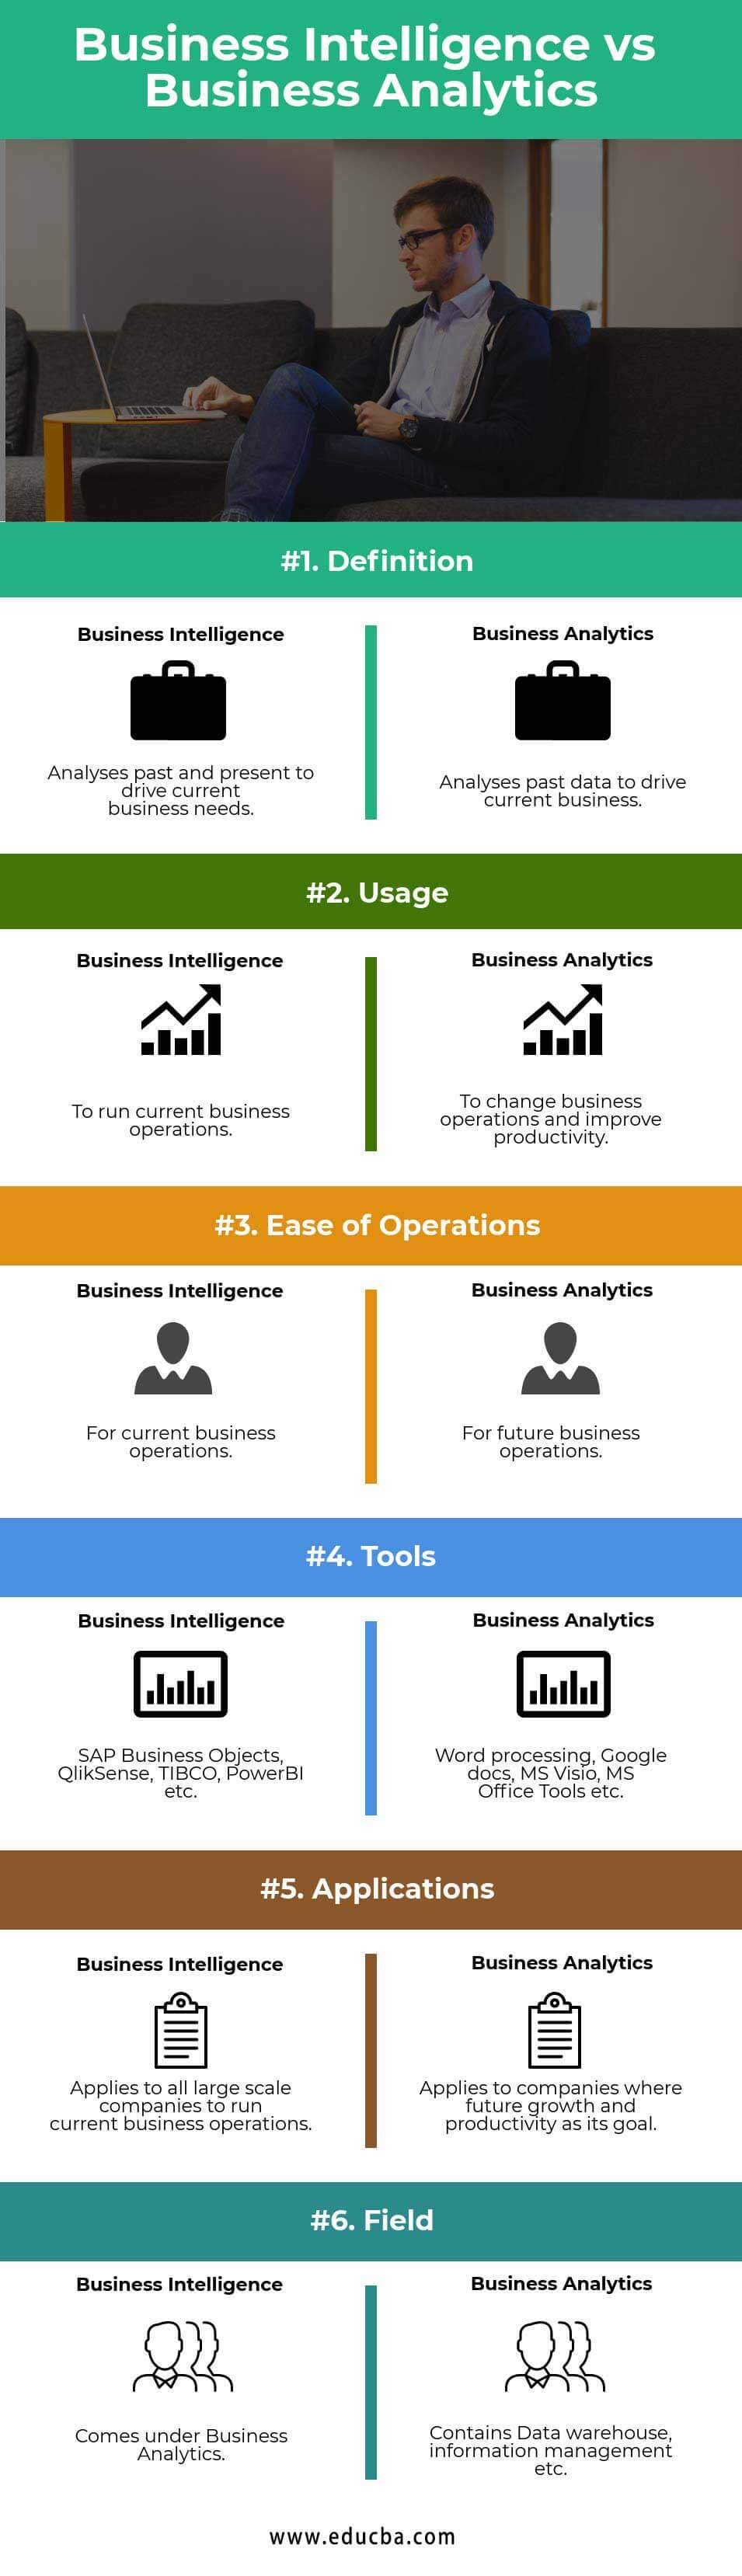 who uses business intelligence applications